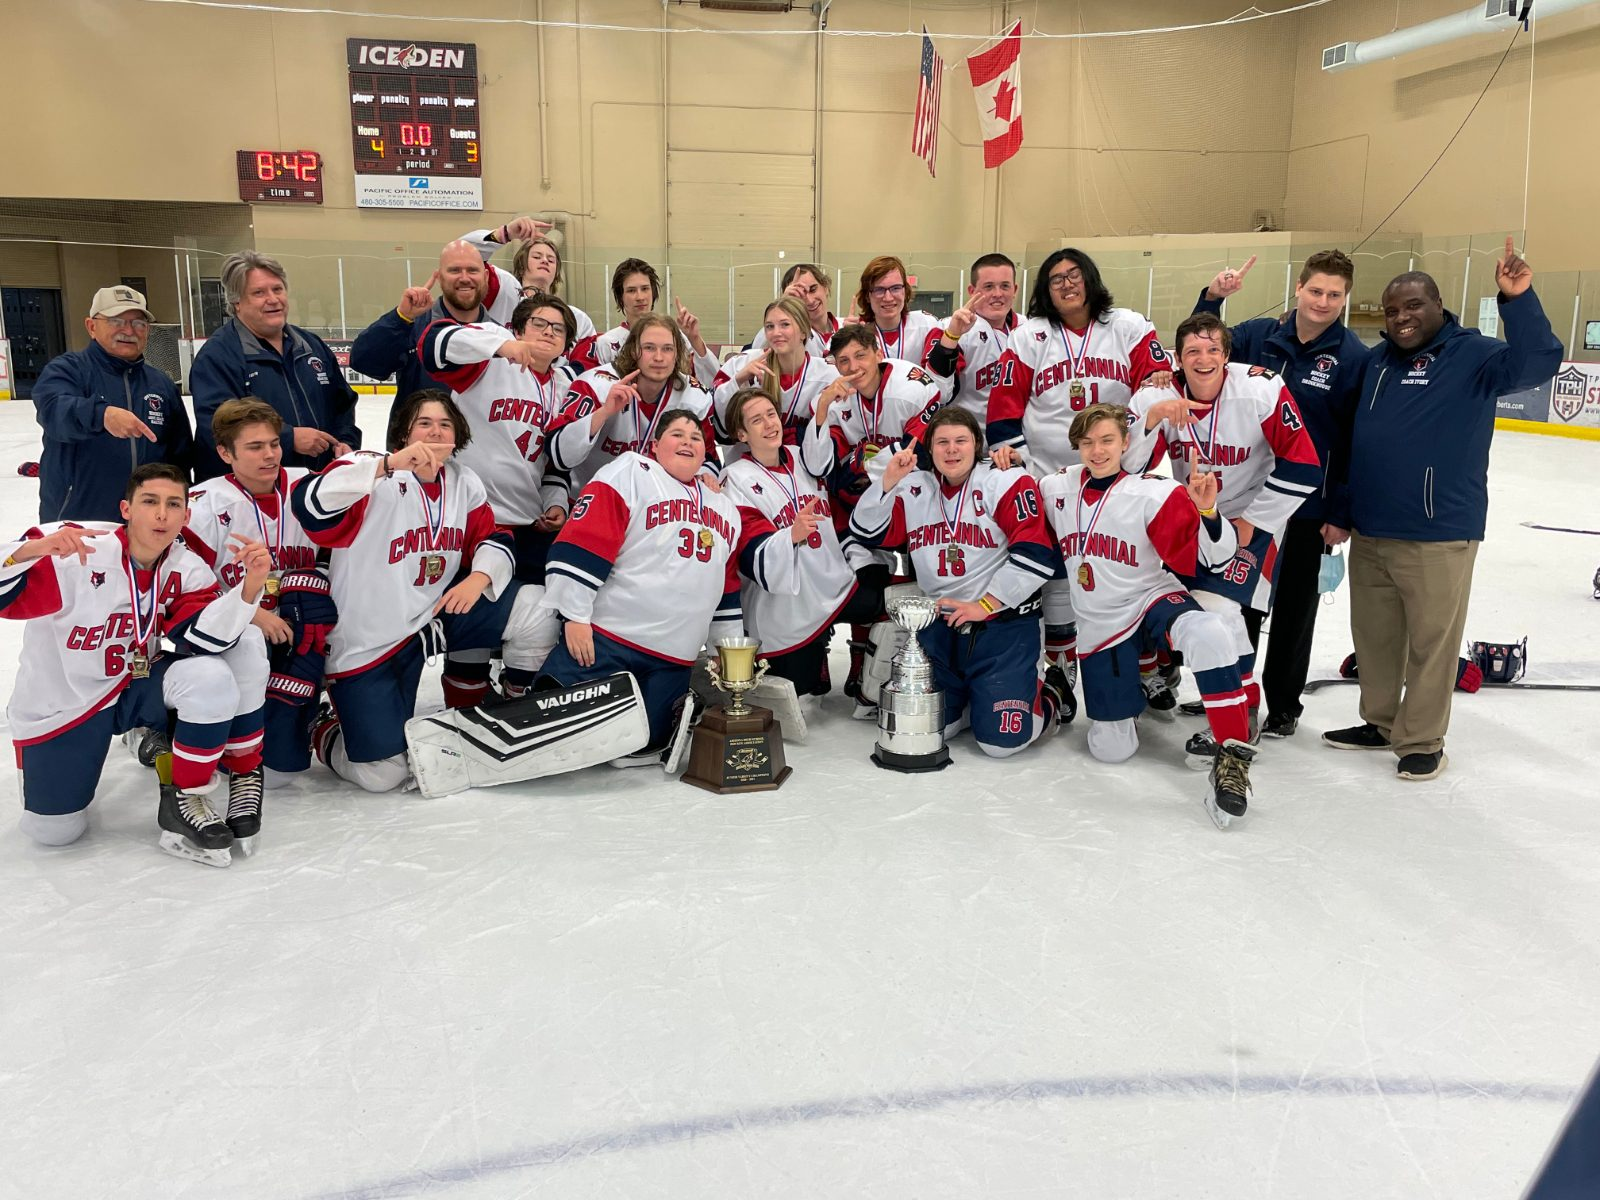 Brown Helps Lead Centennial To JV Hockey Title